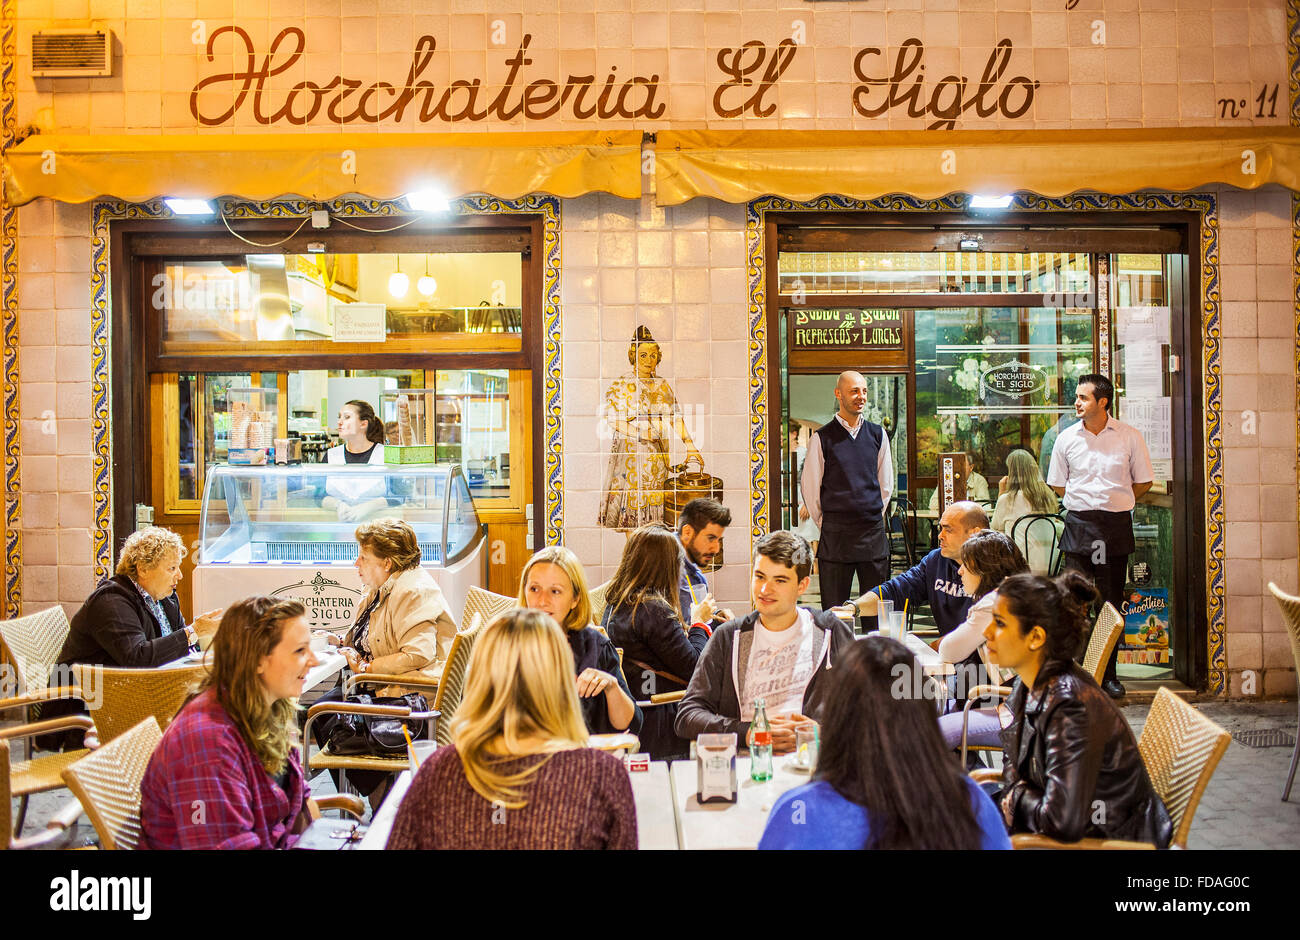 Image result for horchateria valencia